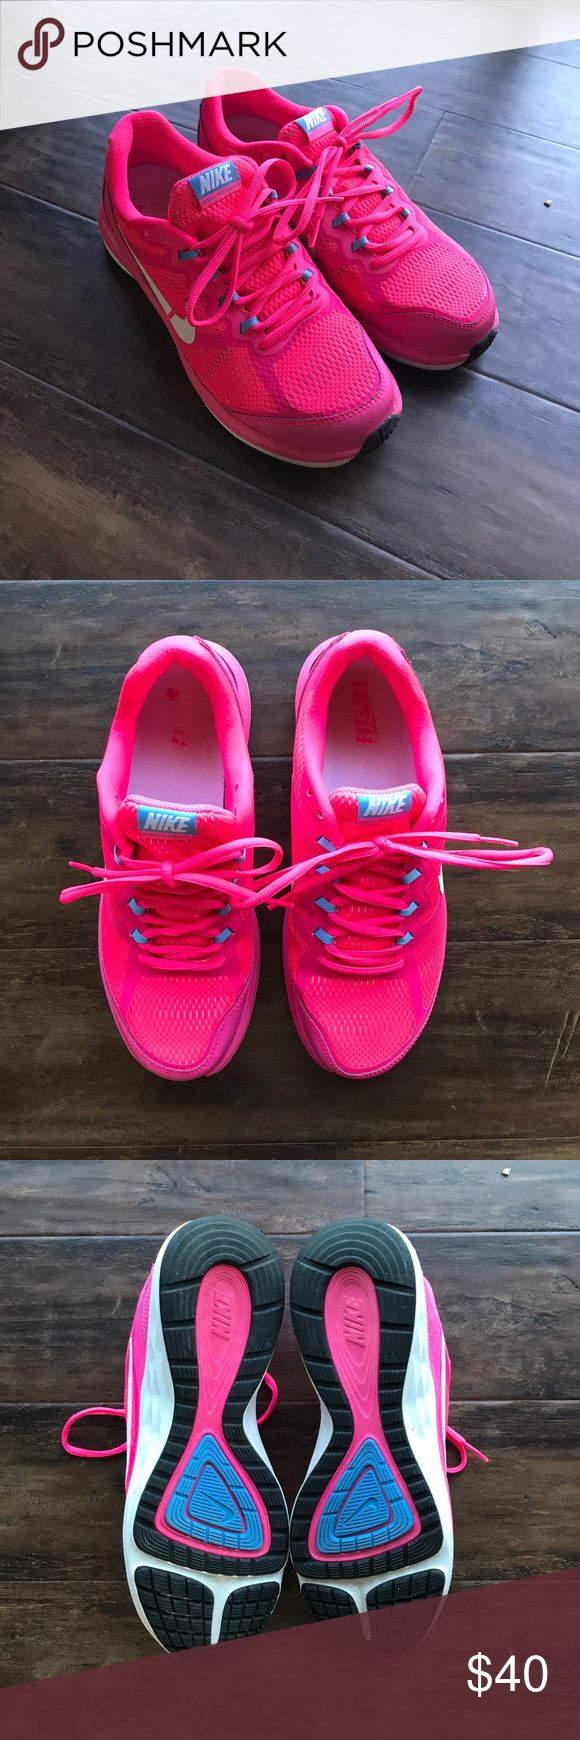 Nike Dual Fusion Run 3 Hot Pink Running Shoes Nike Dual Fusion Run 3 Hot Pink Women's Running Shoes. Size 8.5. Minor wear in the inside. Perfect condition otherwise. Worn once. Nike Shoes Athletic Shoes